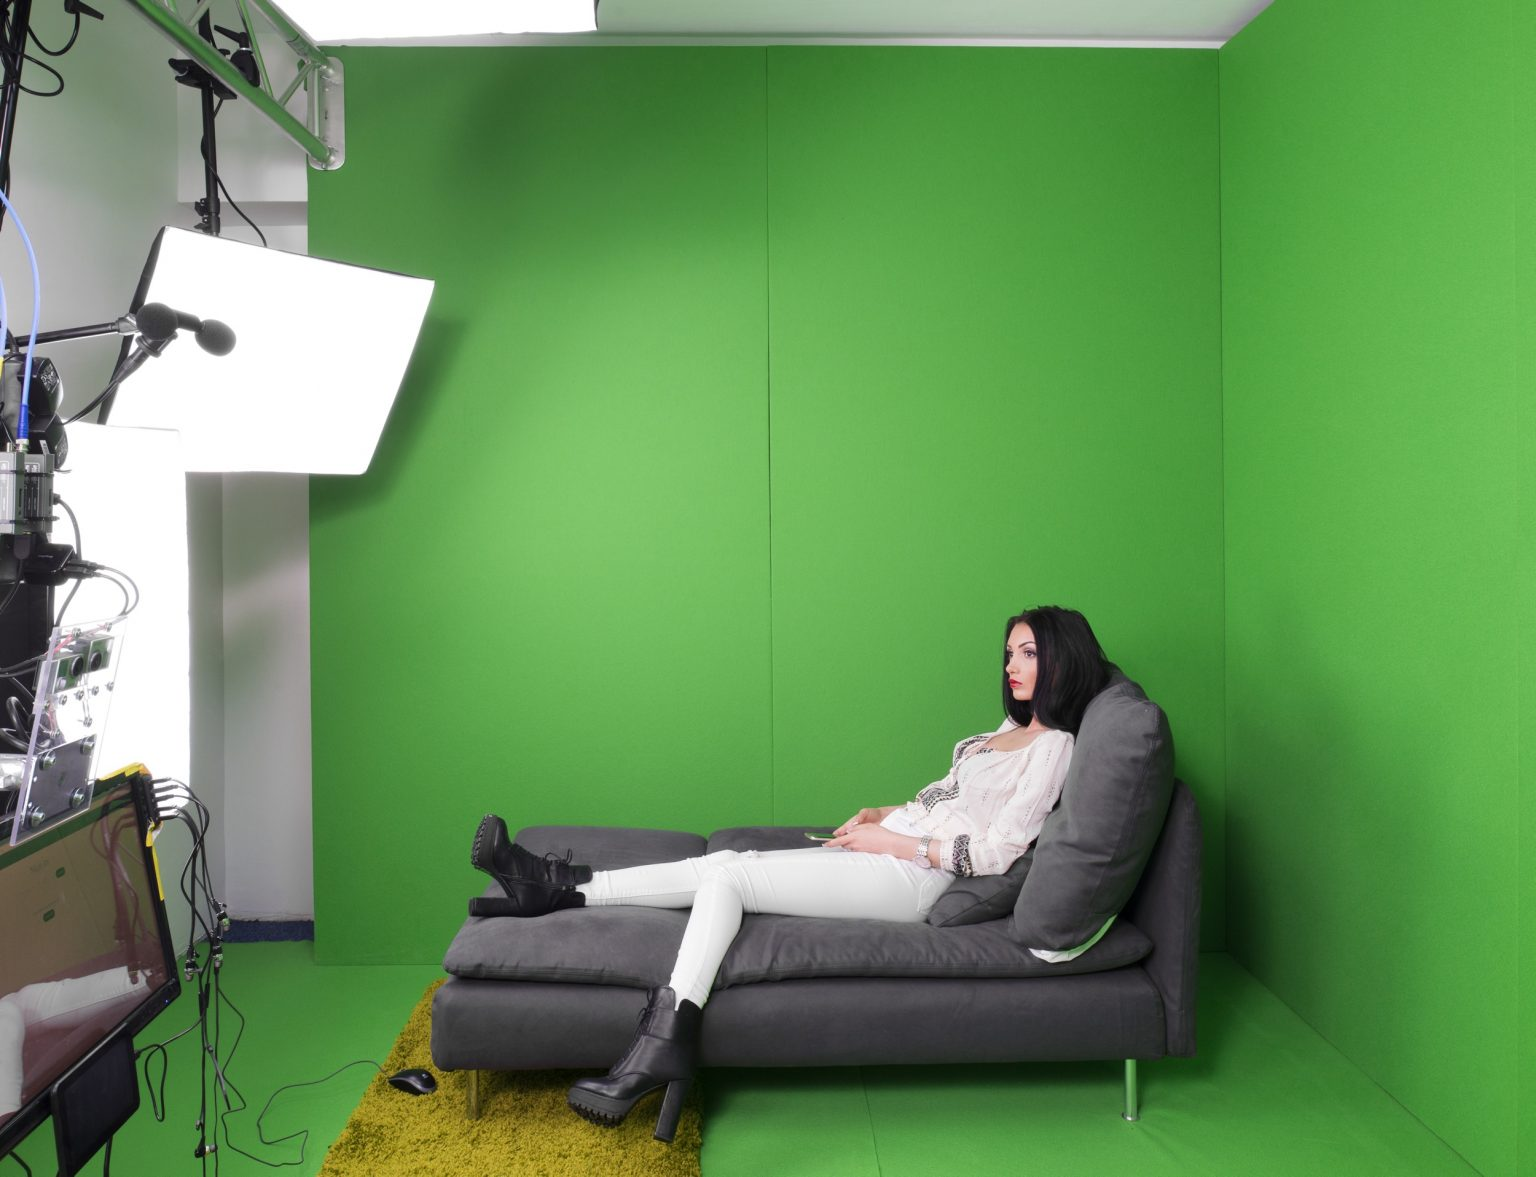 """A 25 years old cam model in the virtual reality room at """"Studio 20"""" before her night shift. Bucharest, Romania, 2016"""